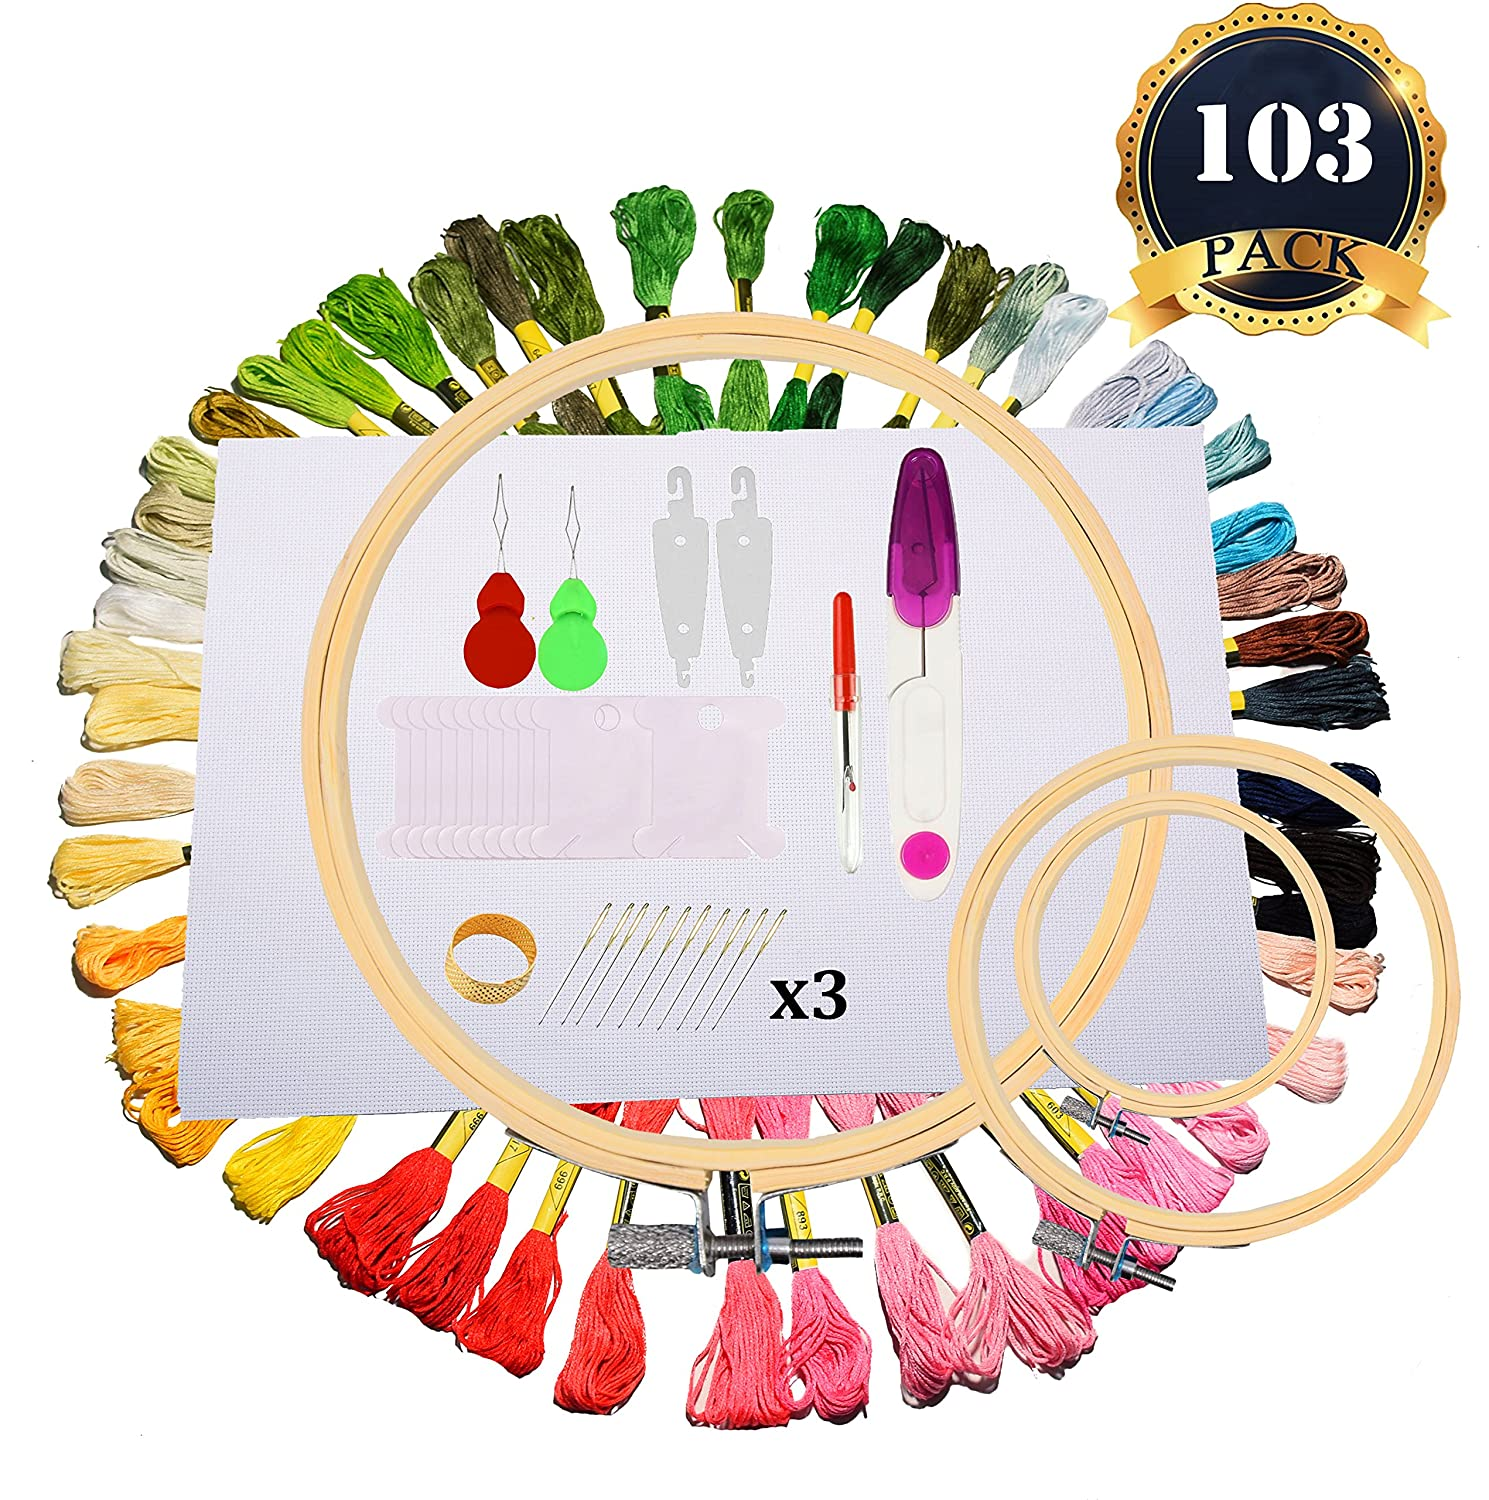 Full Range of Embroidery Starter Kit- 3 Pieces Bamboo Embroidery Hoops, 50 Color Threads, 1 Piece 12 by 18 Inch 14 Count Classic Reserve Aida Cloth and Cross Stitch Tool Kit COMEMAKA